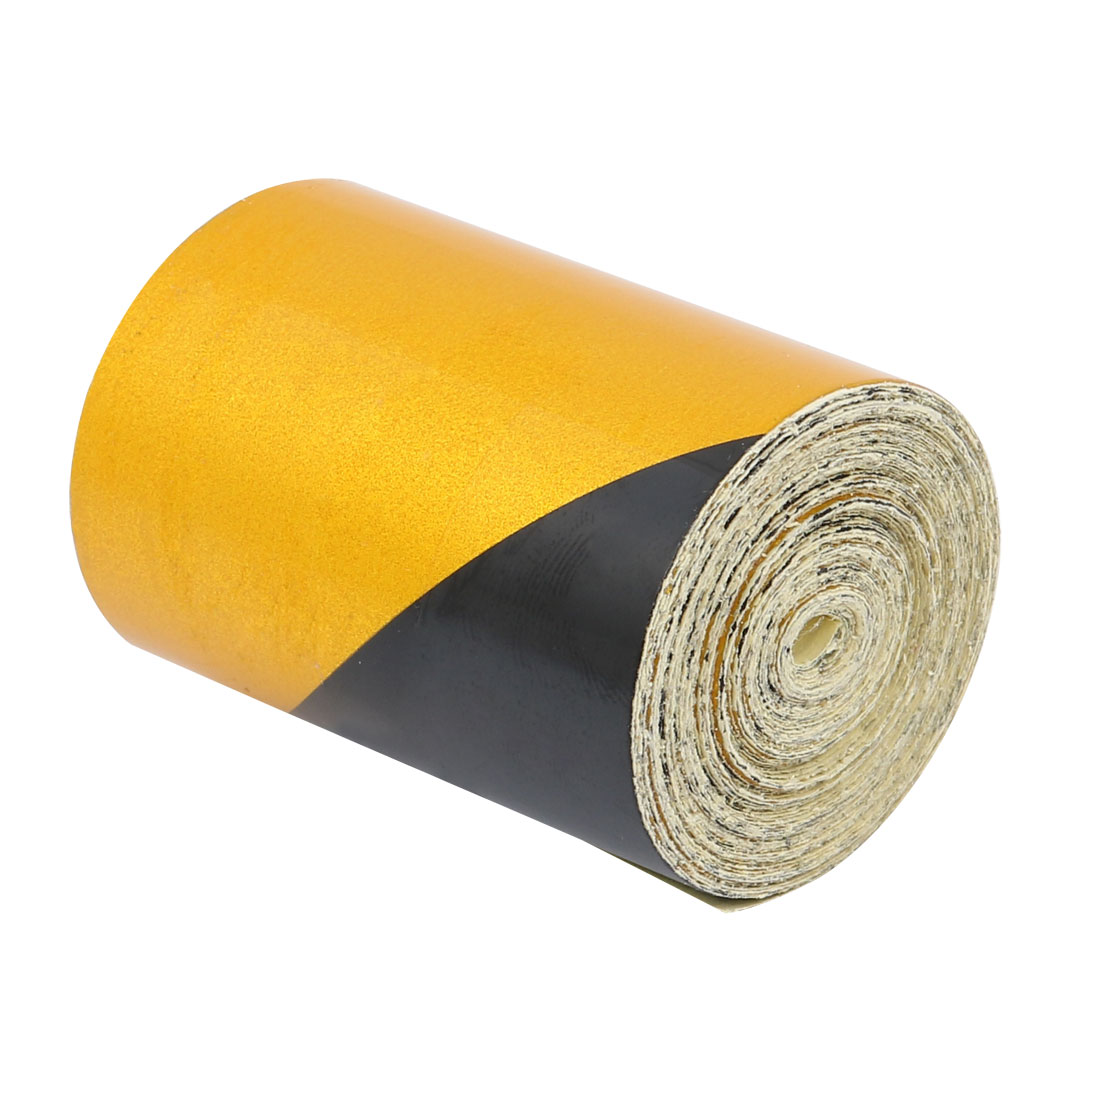 5Meters Long 5cm Wide Single Sided Adhesive Reflective Warning Tape Yellow Black